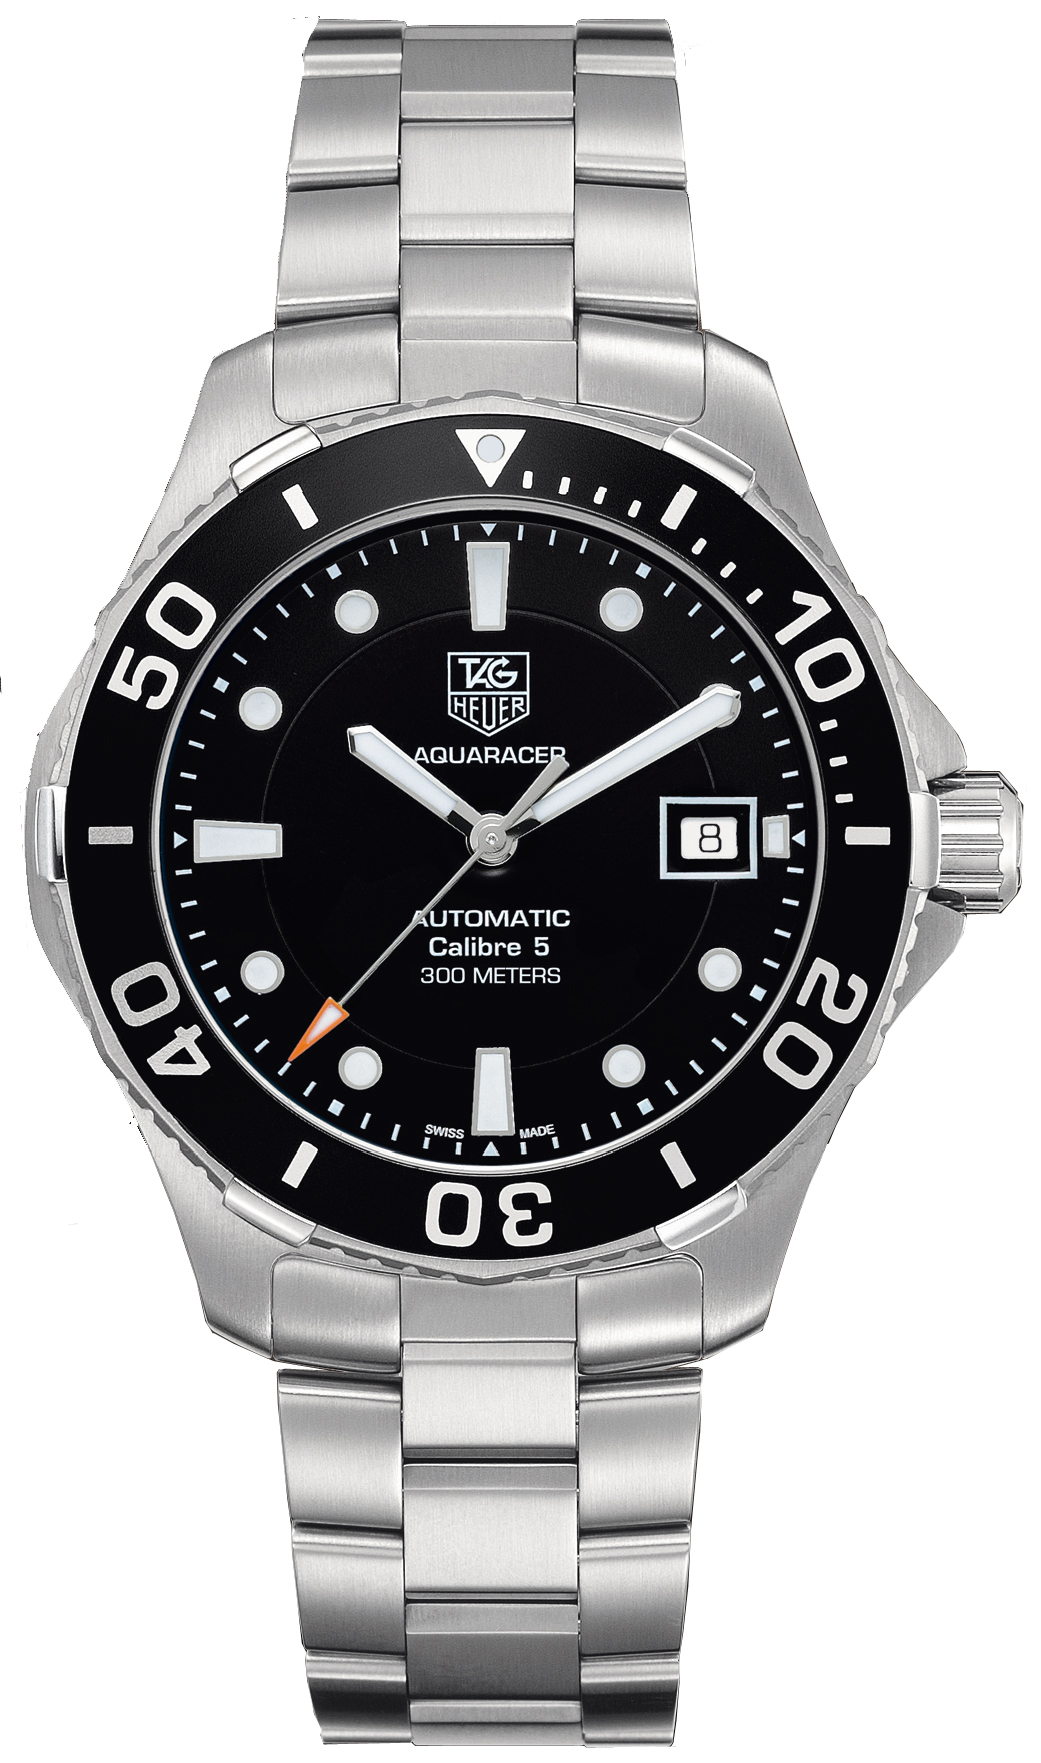 wan2110 ba0822 tag heuer aquaracer cal 5 300m mens automatic watch